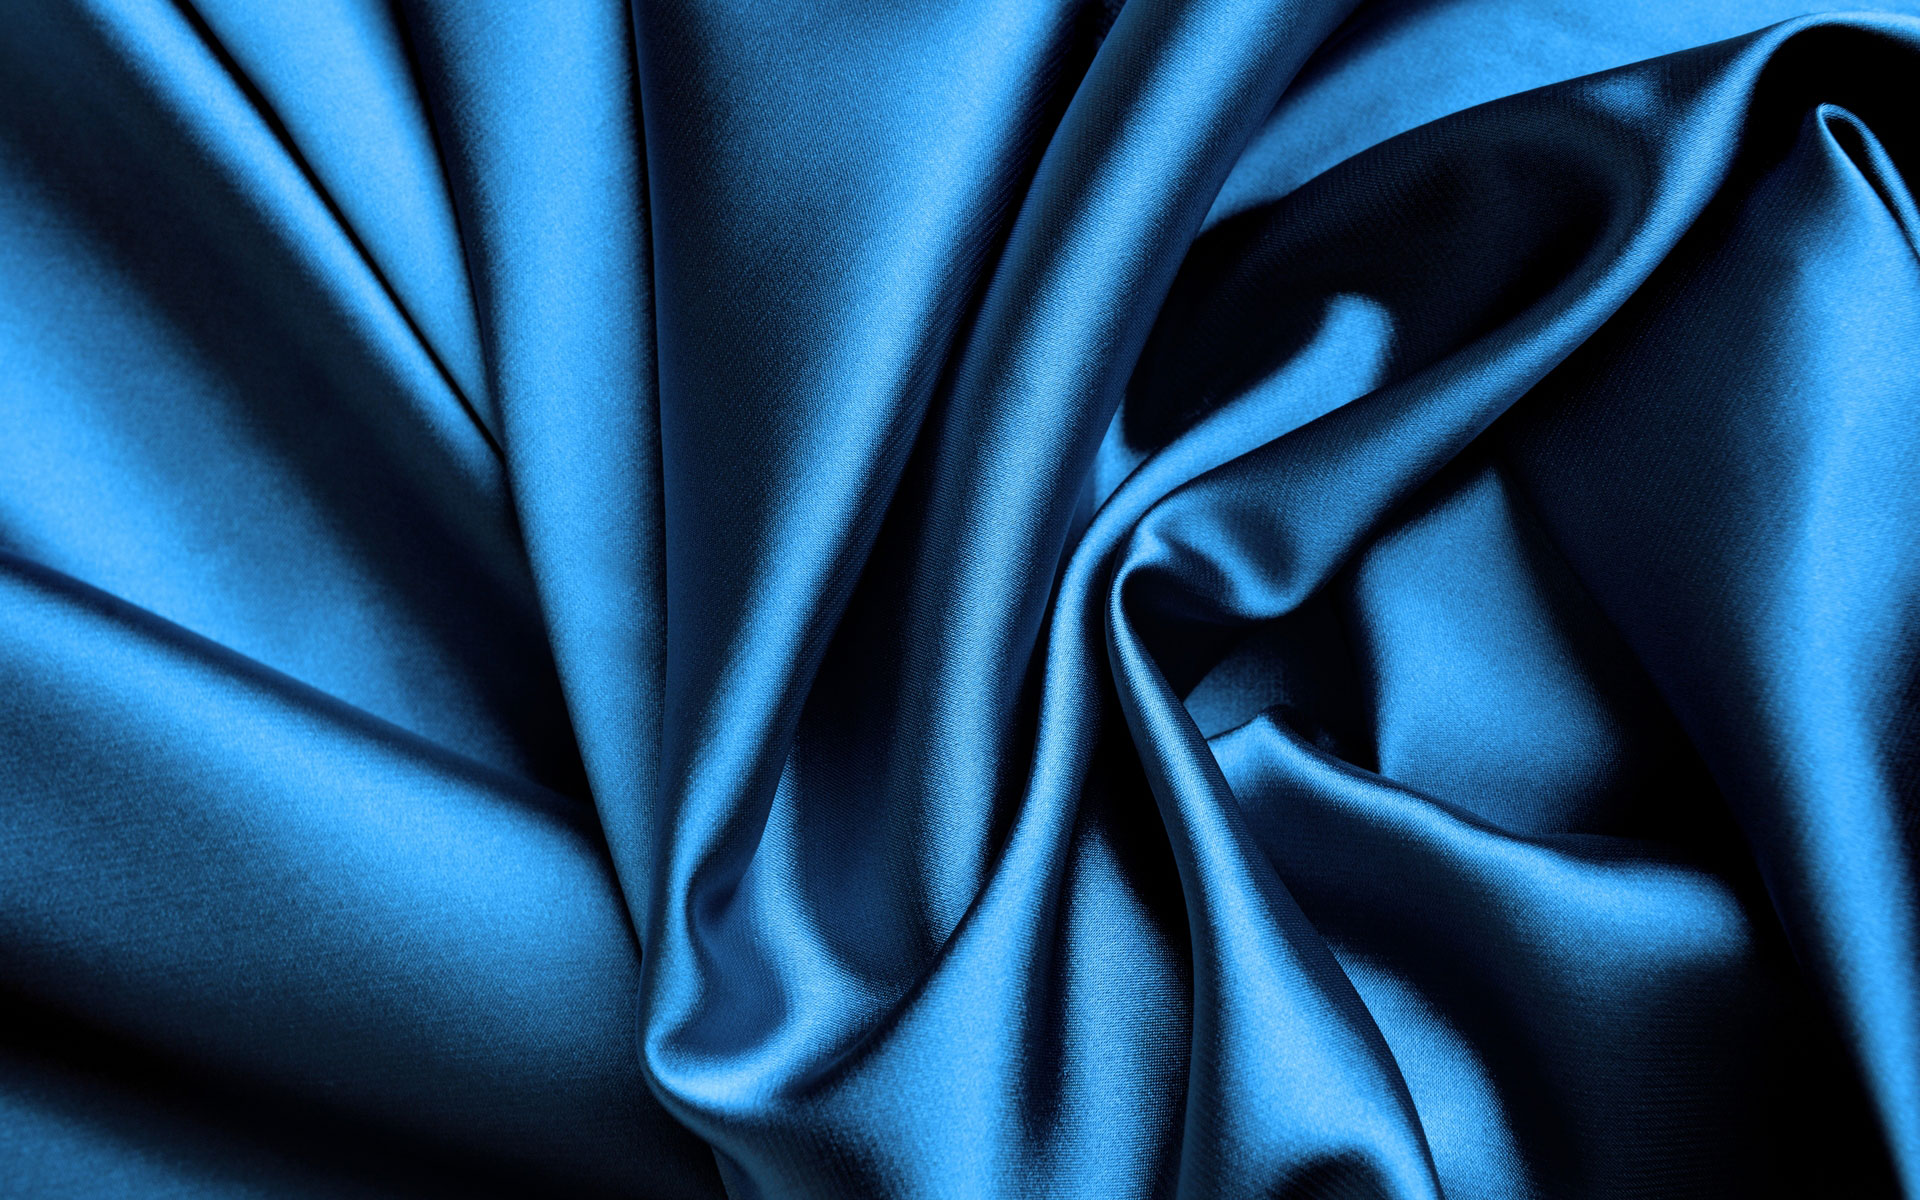 satin backgrounds image art - photo #22